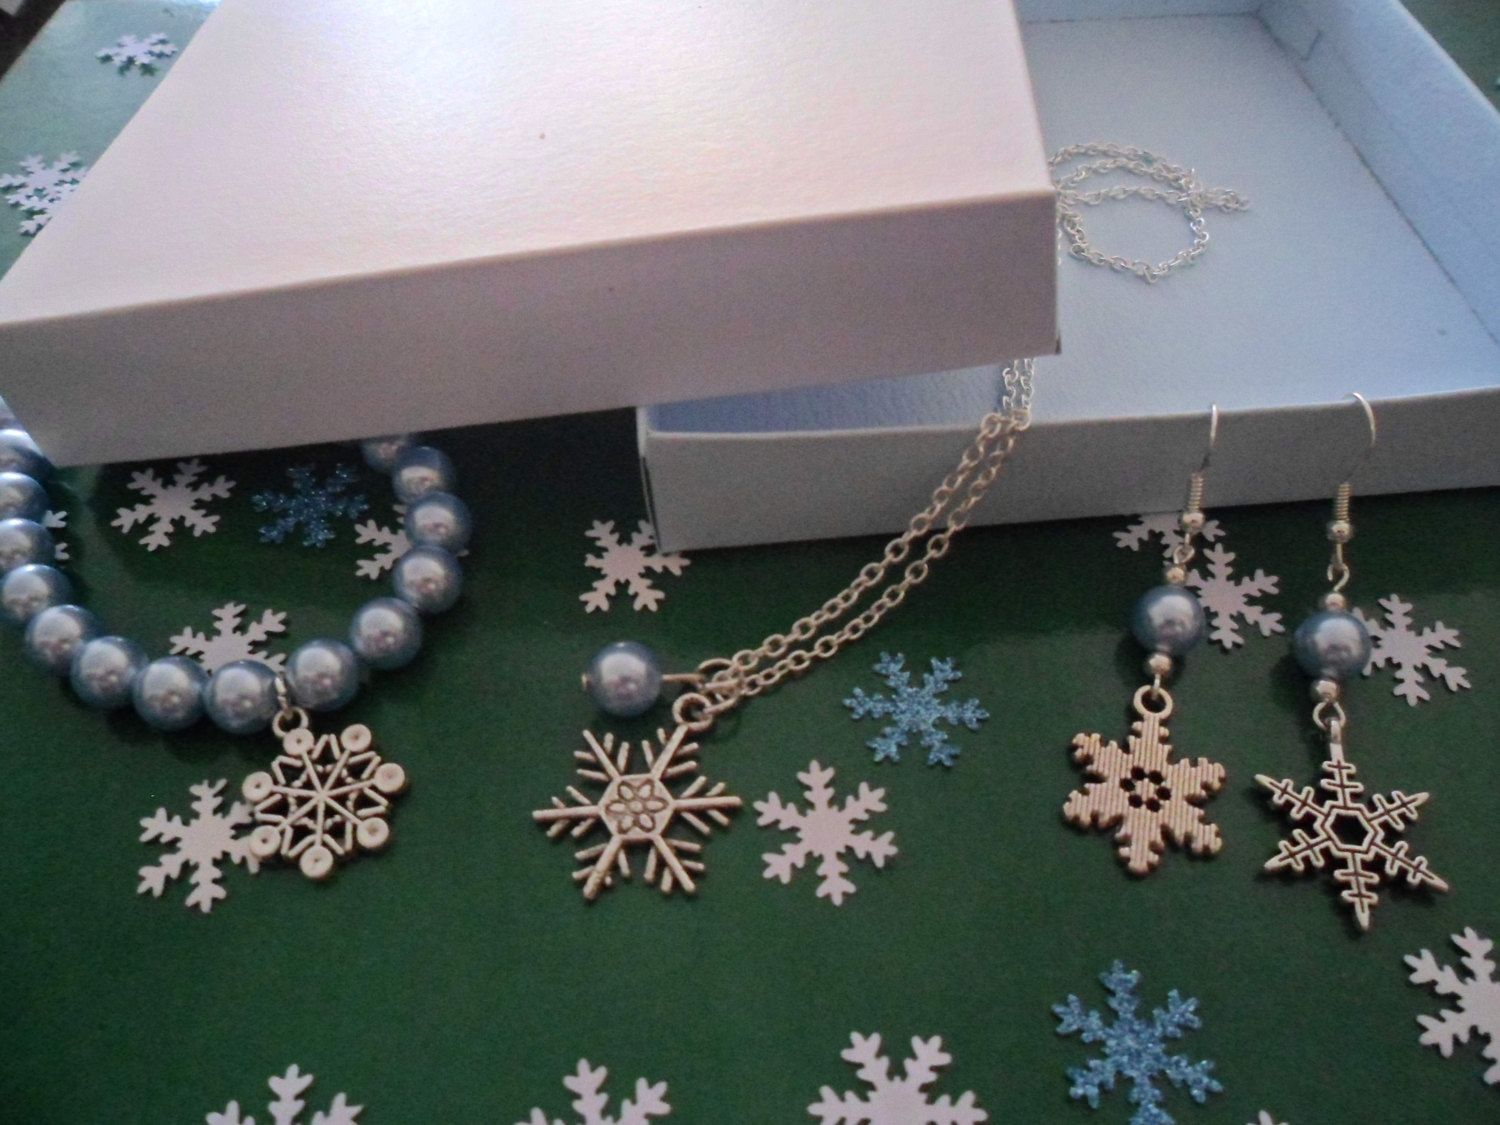 Unique Snowflake & Swarovski Ice Blue Pearl Jewellery Gift set in handmade gift box.  Frozen/winter inspired jewellery. Made to order by HazelsWeddingShop on Etsy